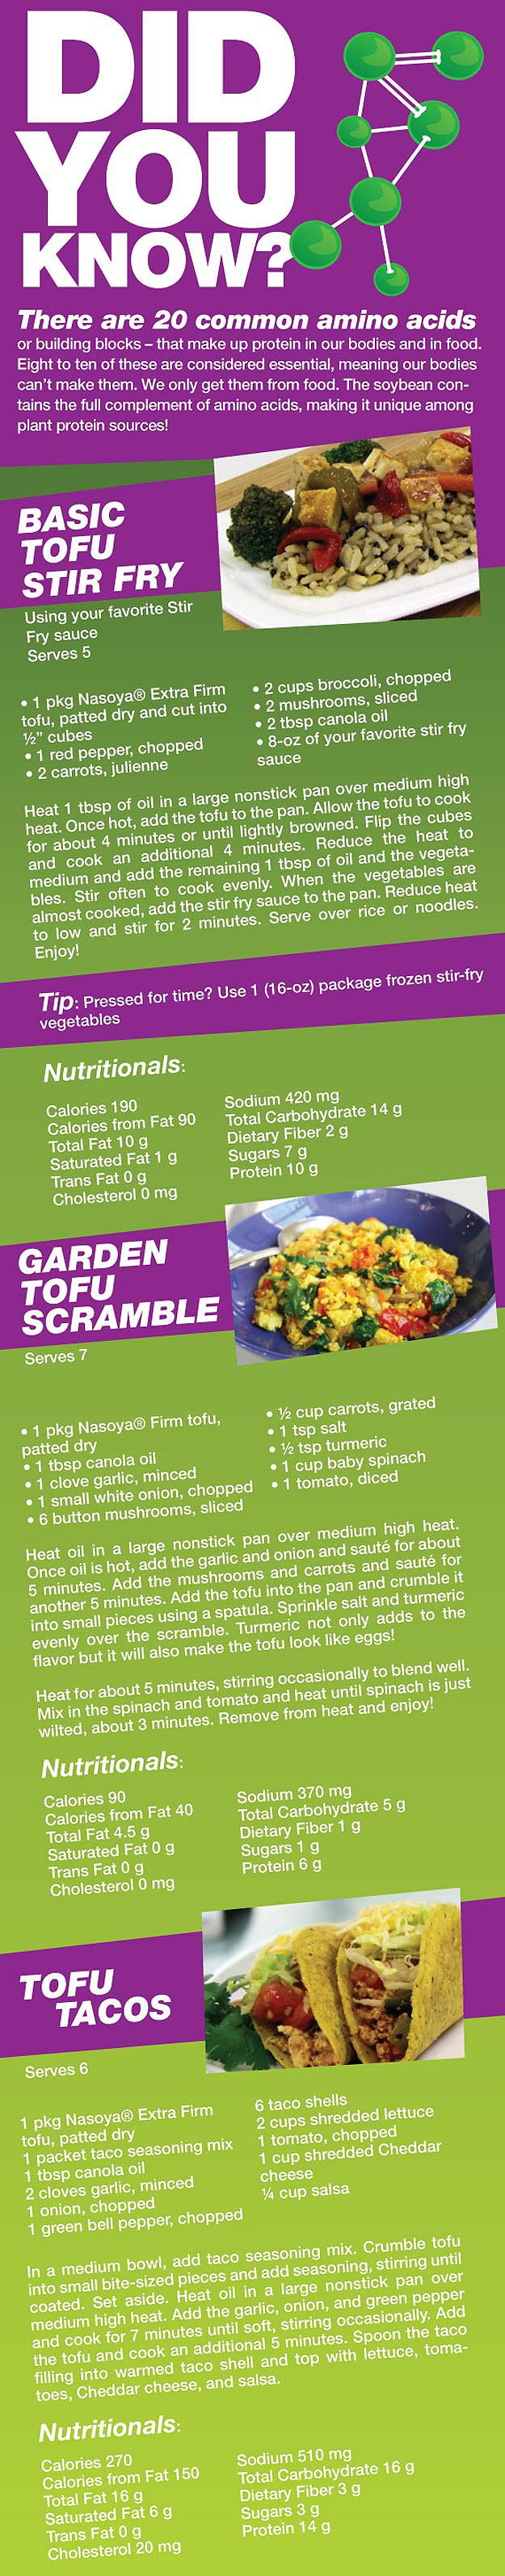 Tofu Facts and Information